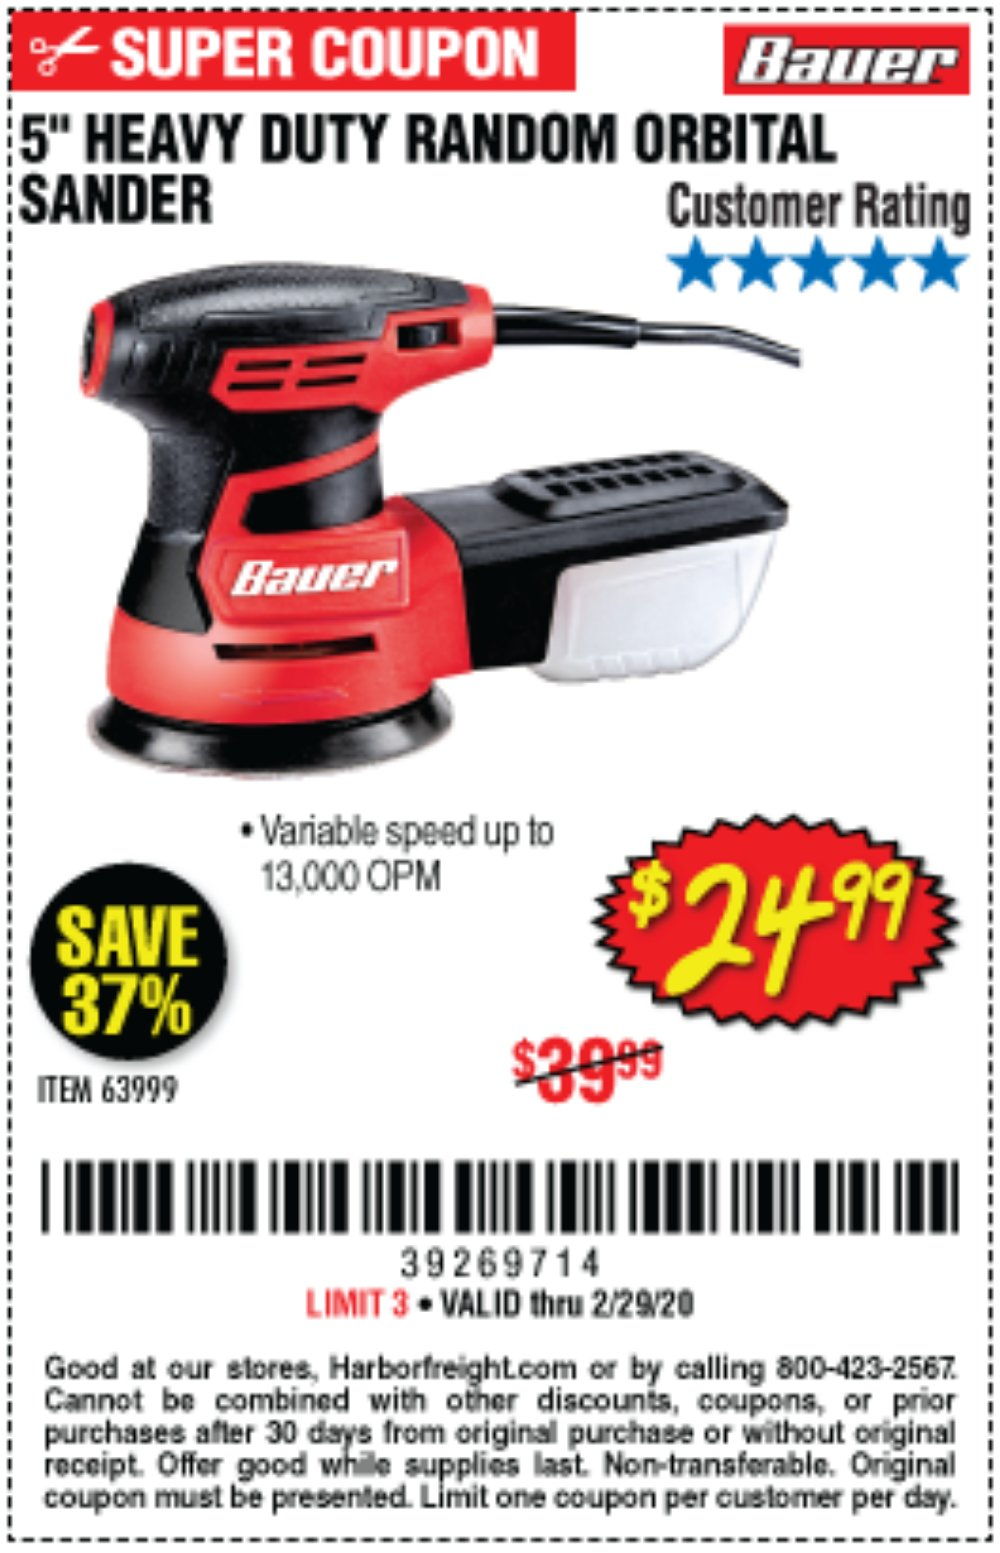 Harbor Freight Coupon, HF Coupons - Bauer 2.8 Amp 5